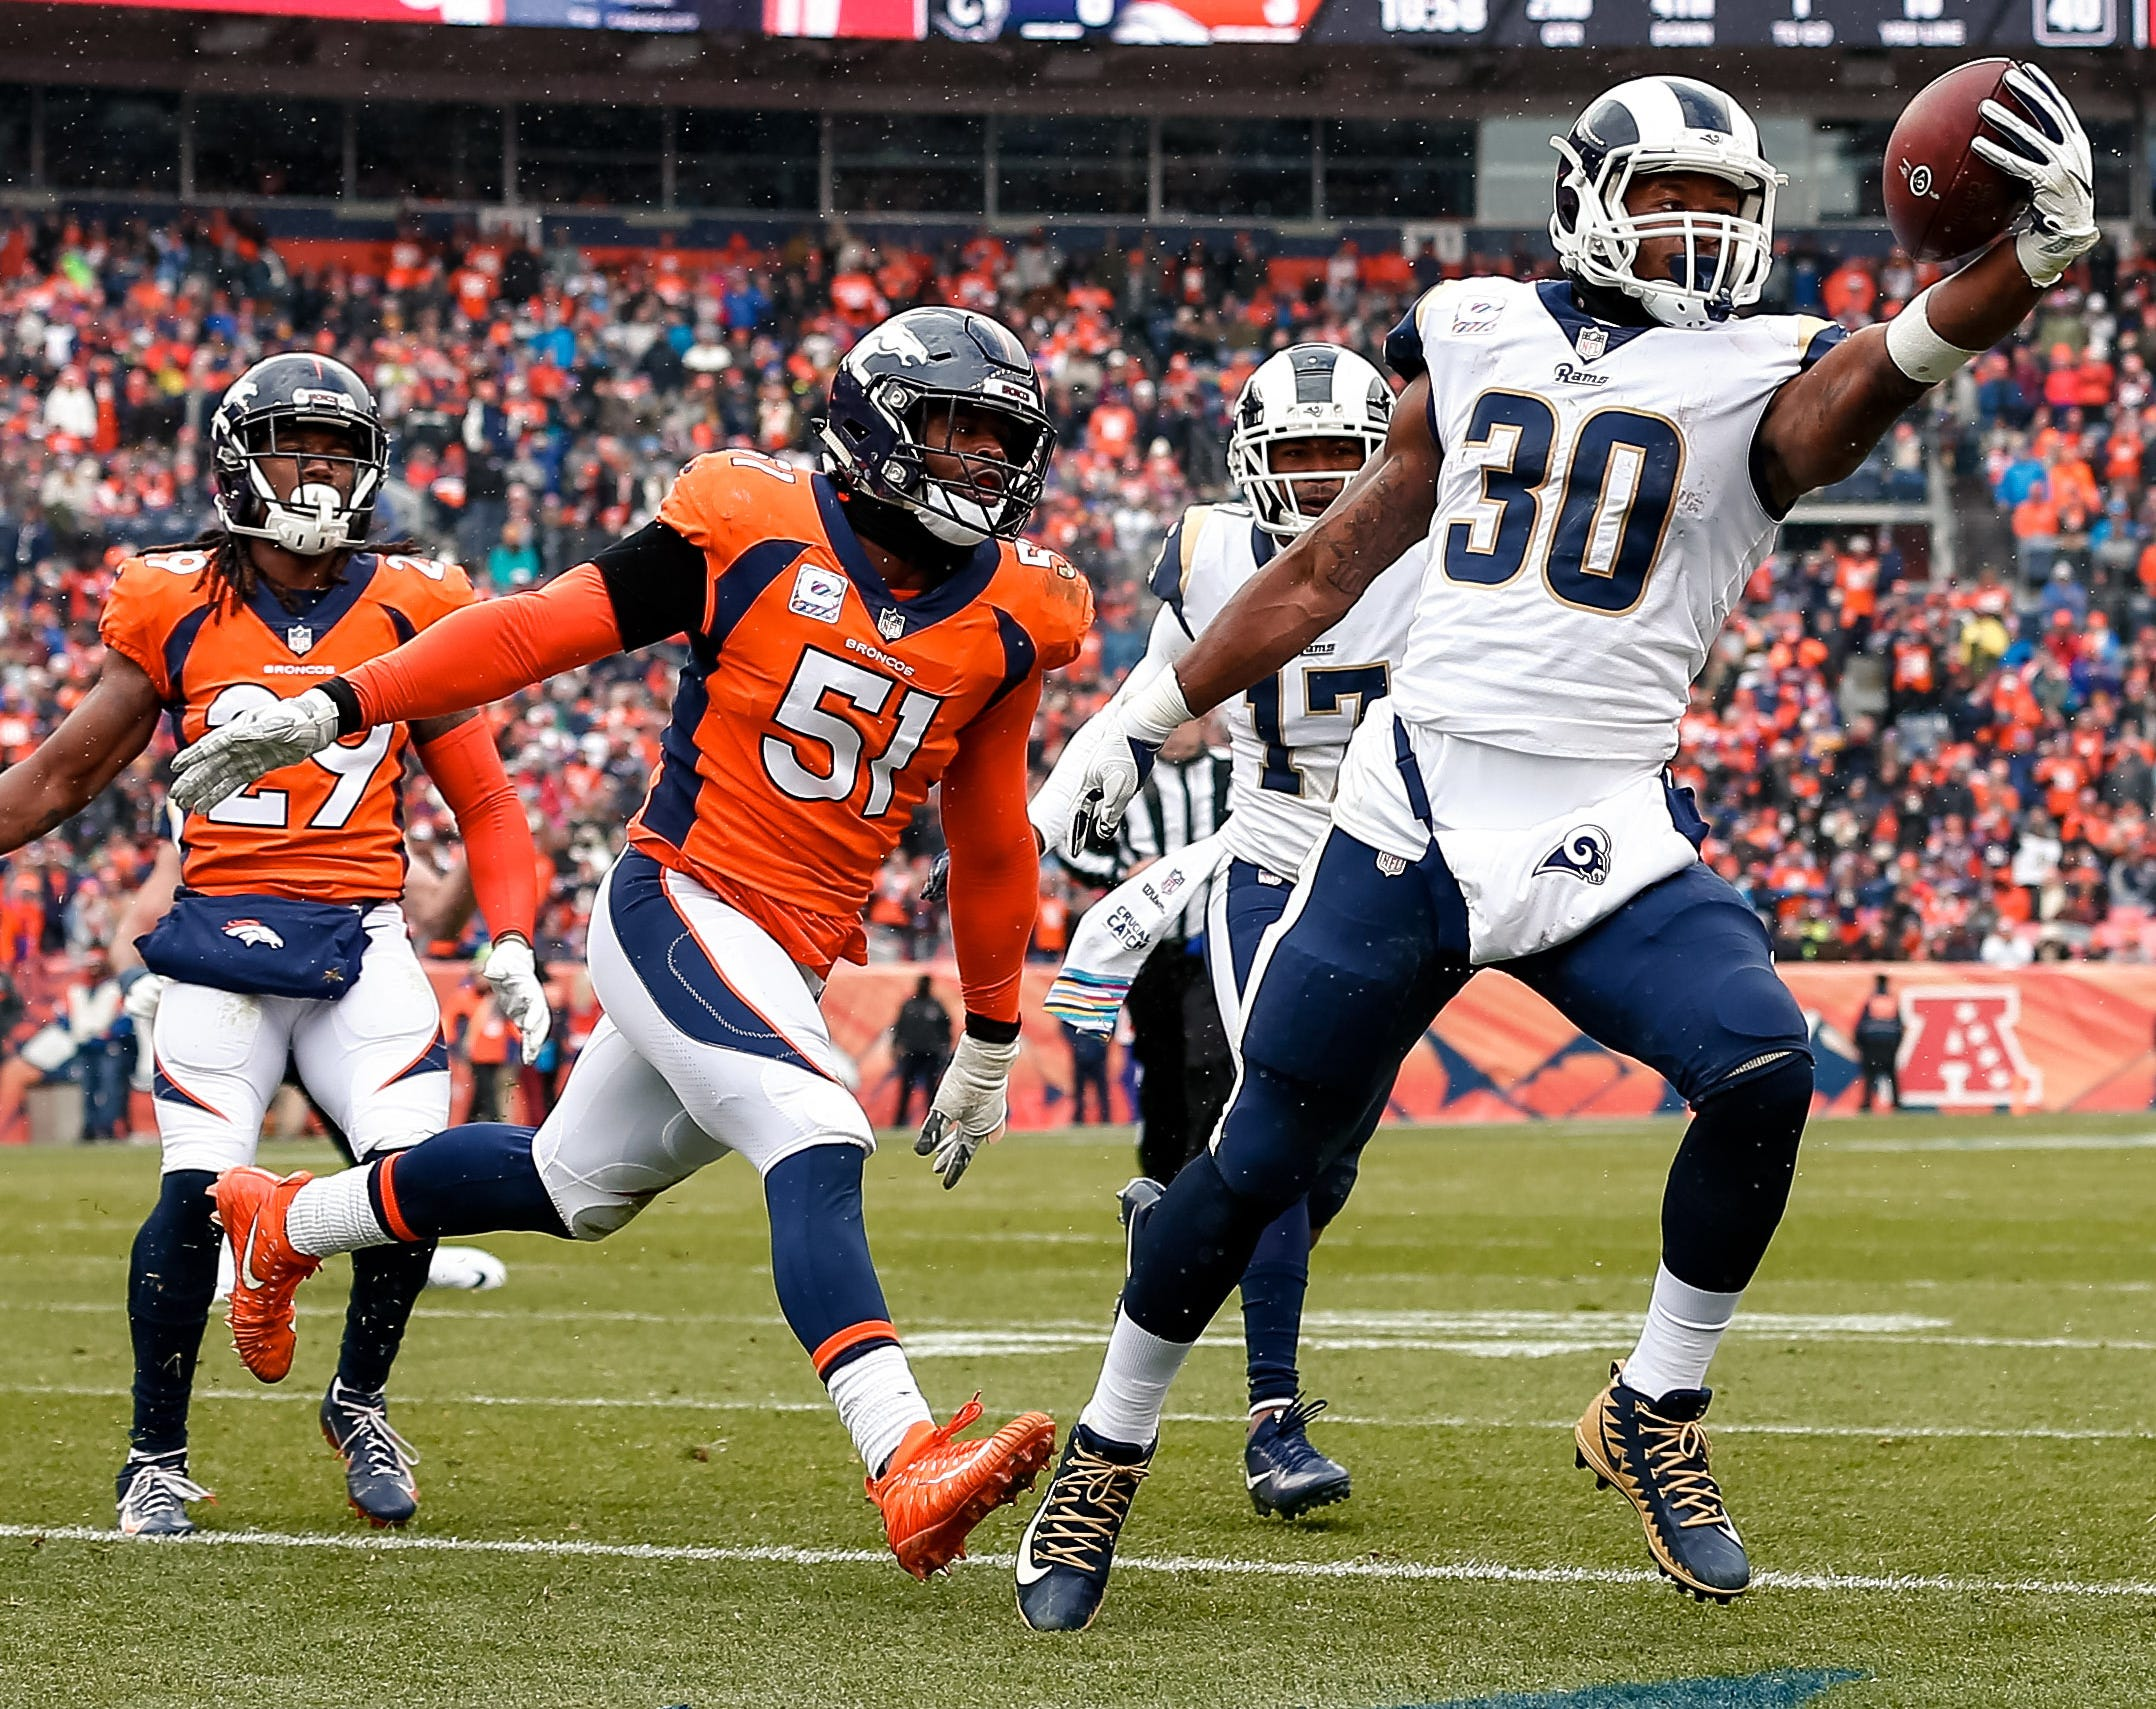 Todd Gurley runs for touchdown against the Denver Broncos.